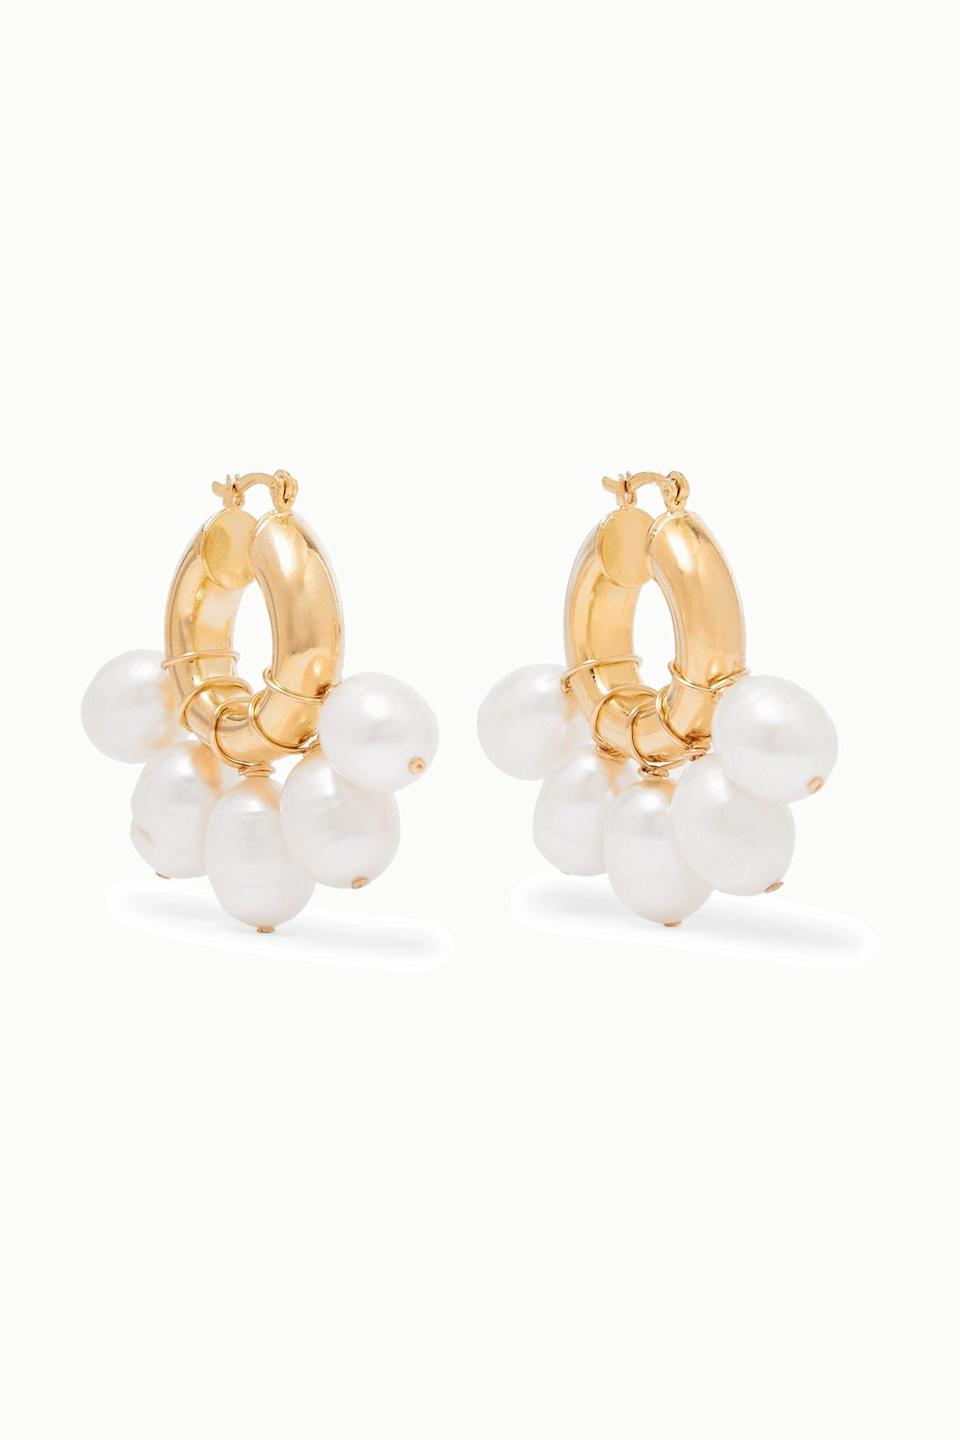 """<p><strong>éliou</strong></p><p>net-a-porter.com</p><p><strong>$96.00</strong></p><p><a href=""""https://go.redirectingat.com?id=74968X1596630&url=https%3A%2F%2Fwww.net-a-porter.com%2Fen-us%2Fshop%2Fproduct%2Feliou%2Fkavala-gold-plated-pearl-earrings%2F1147745&sref=https%3A%2F%2Fwww.redbookmag.com%2Ffashion%2Fg34824874%2Fbest-jewelry-gift-ideas%2F"""" rel=""""nofollow noopener"""" target=""""_blank"""" data-ylk=""""slk:Shop Now"""" class=""""link rapid-noclick-resp"""">Shop Now</a></p><p>These pearl earrings are the best of everything: hoops <em>and </em>pearls in one, beautiful package. </p>"""